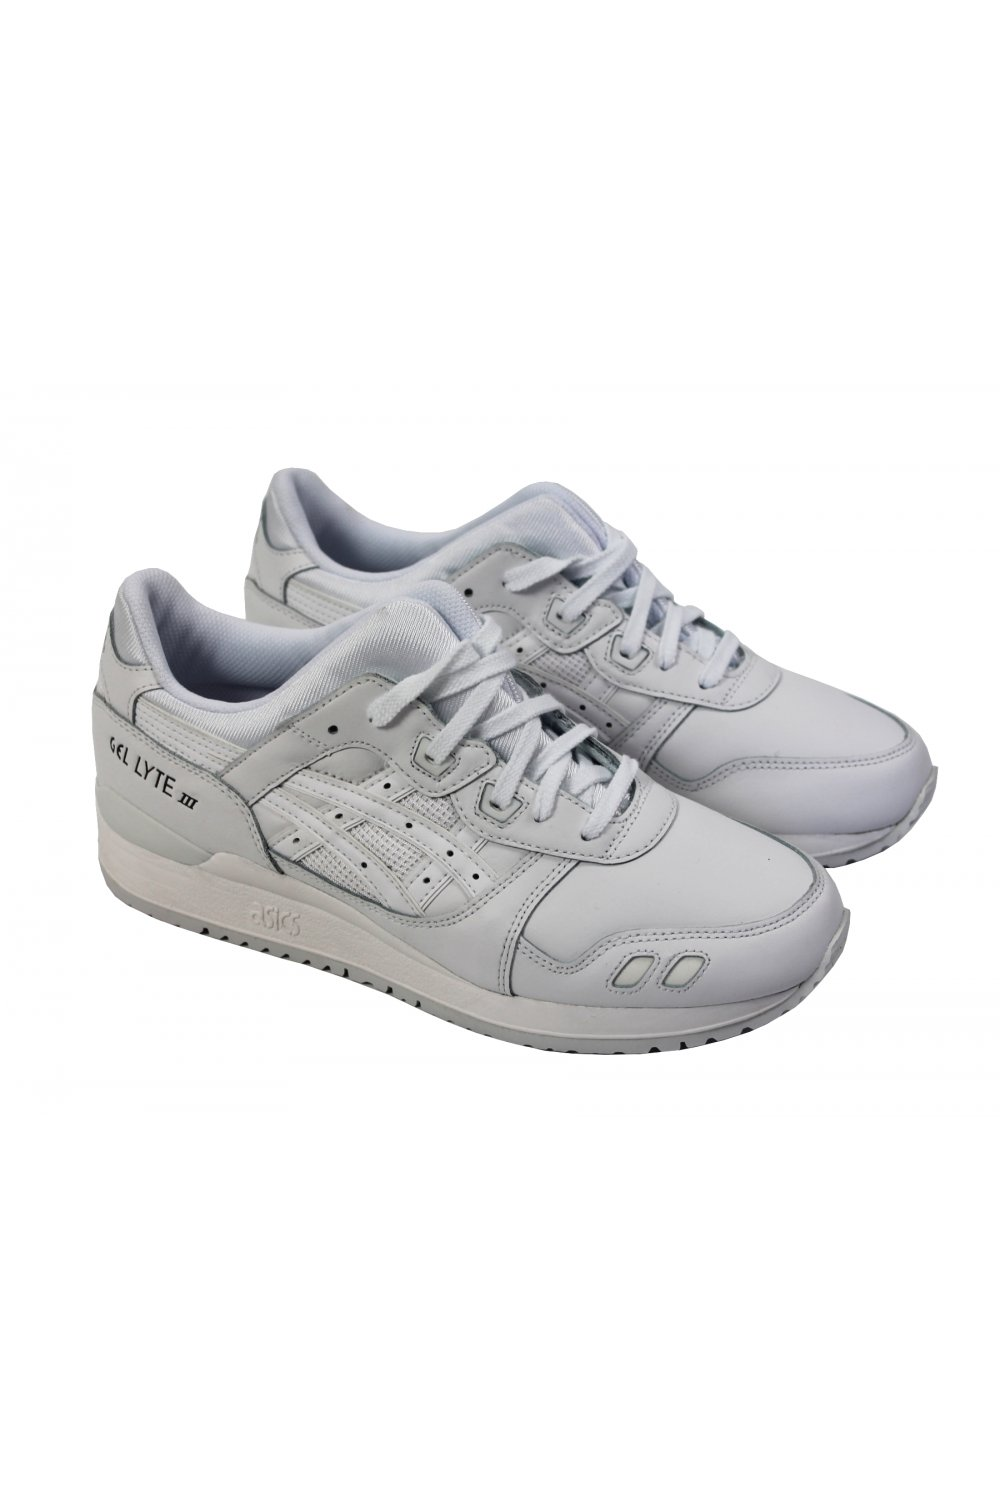 asics gel lyte iii triple white asics from thirtysix uk. Black Bedroom Furniture Sets. Home Design Ideas